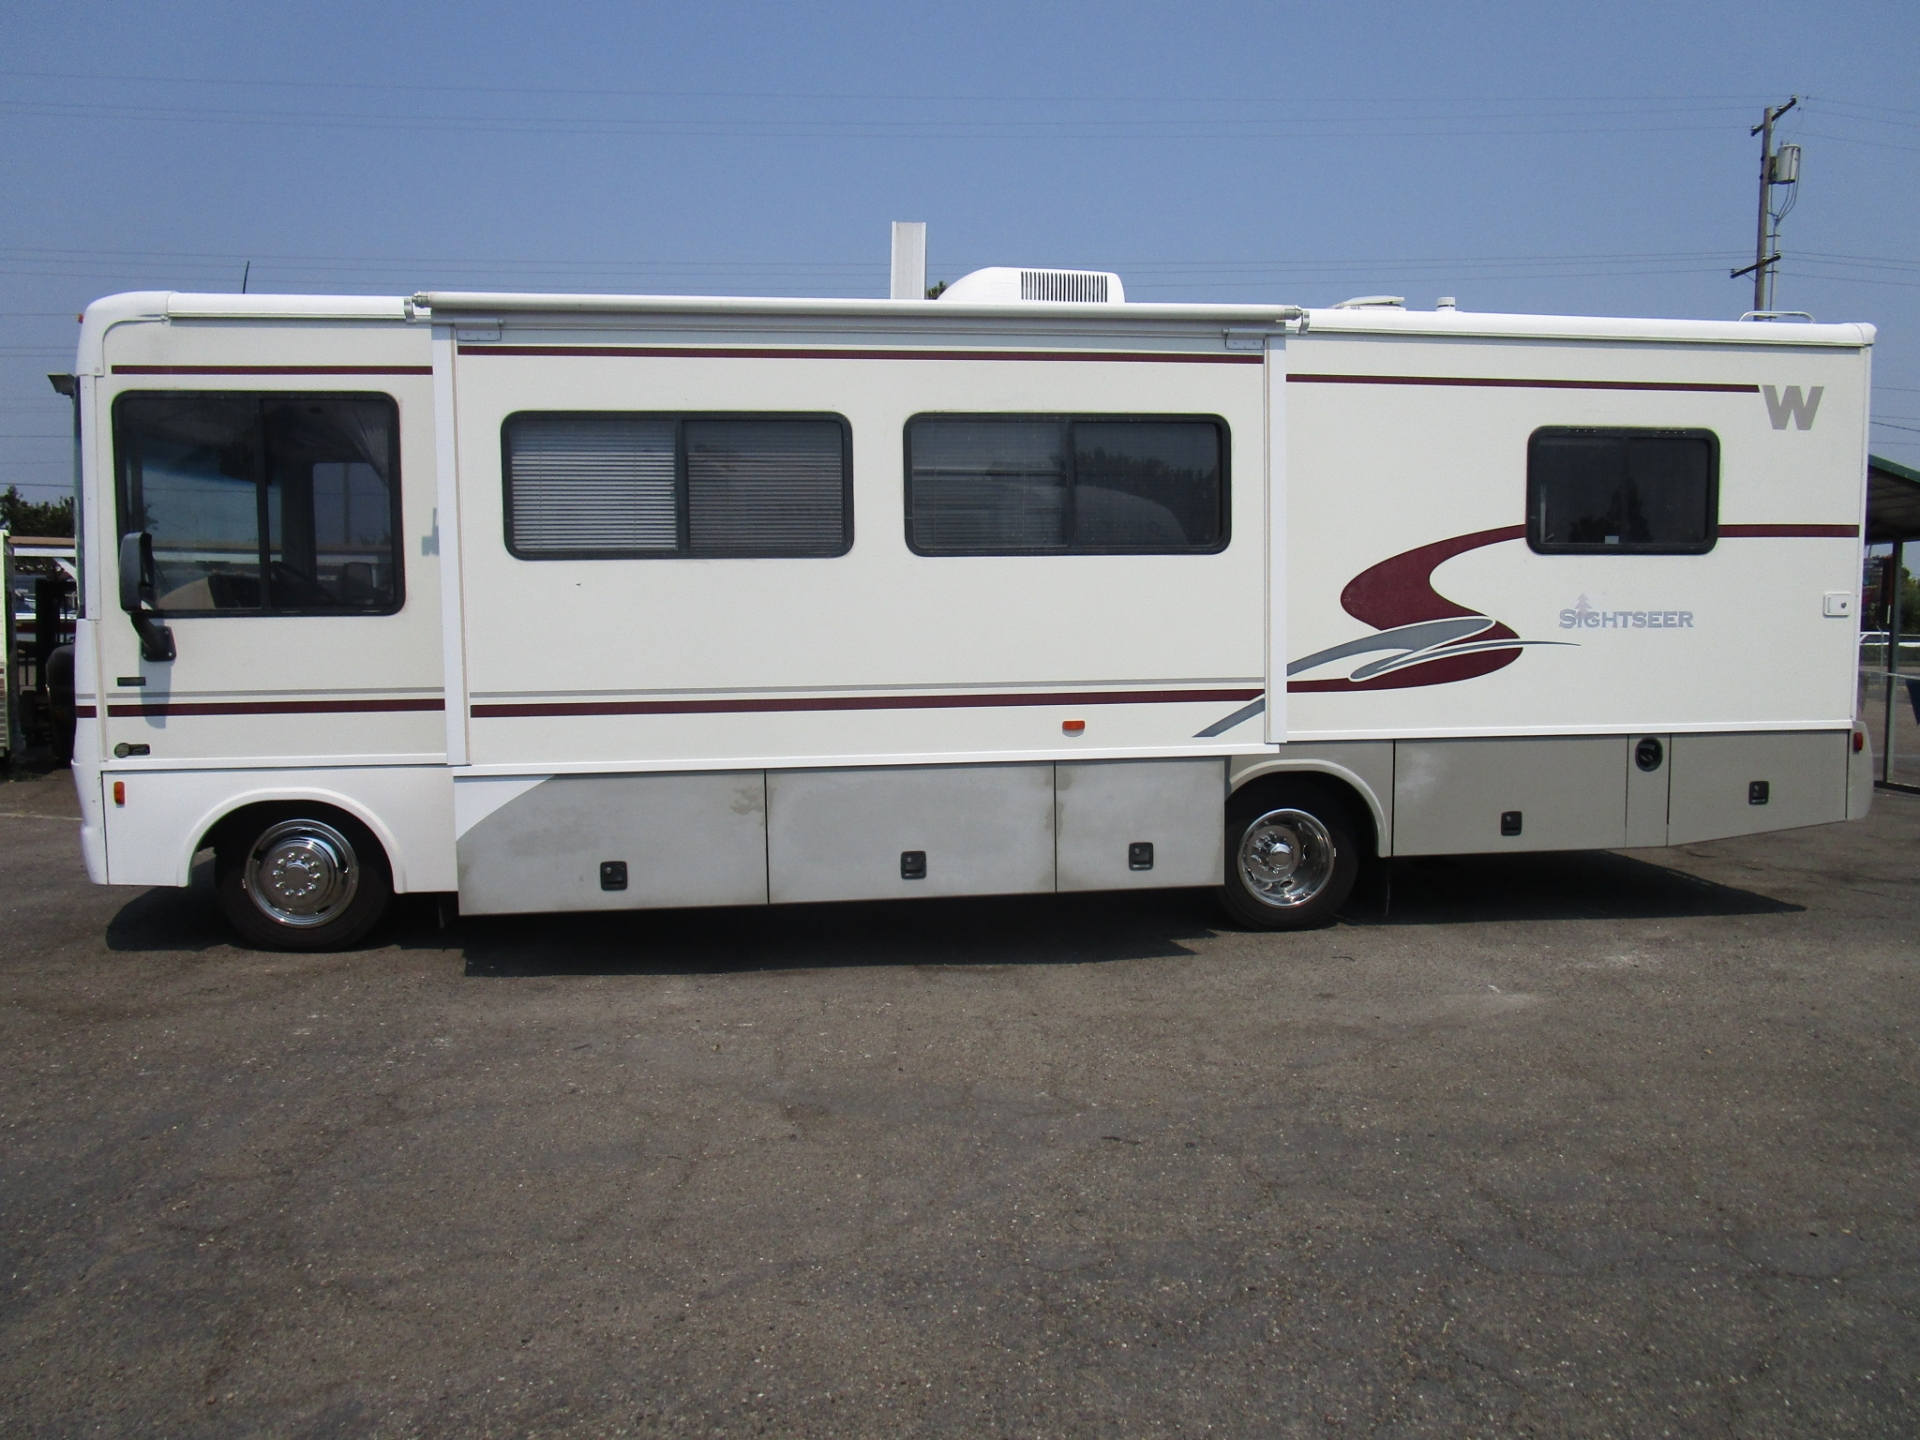 Winnebago Sightseer 2002